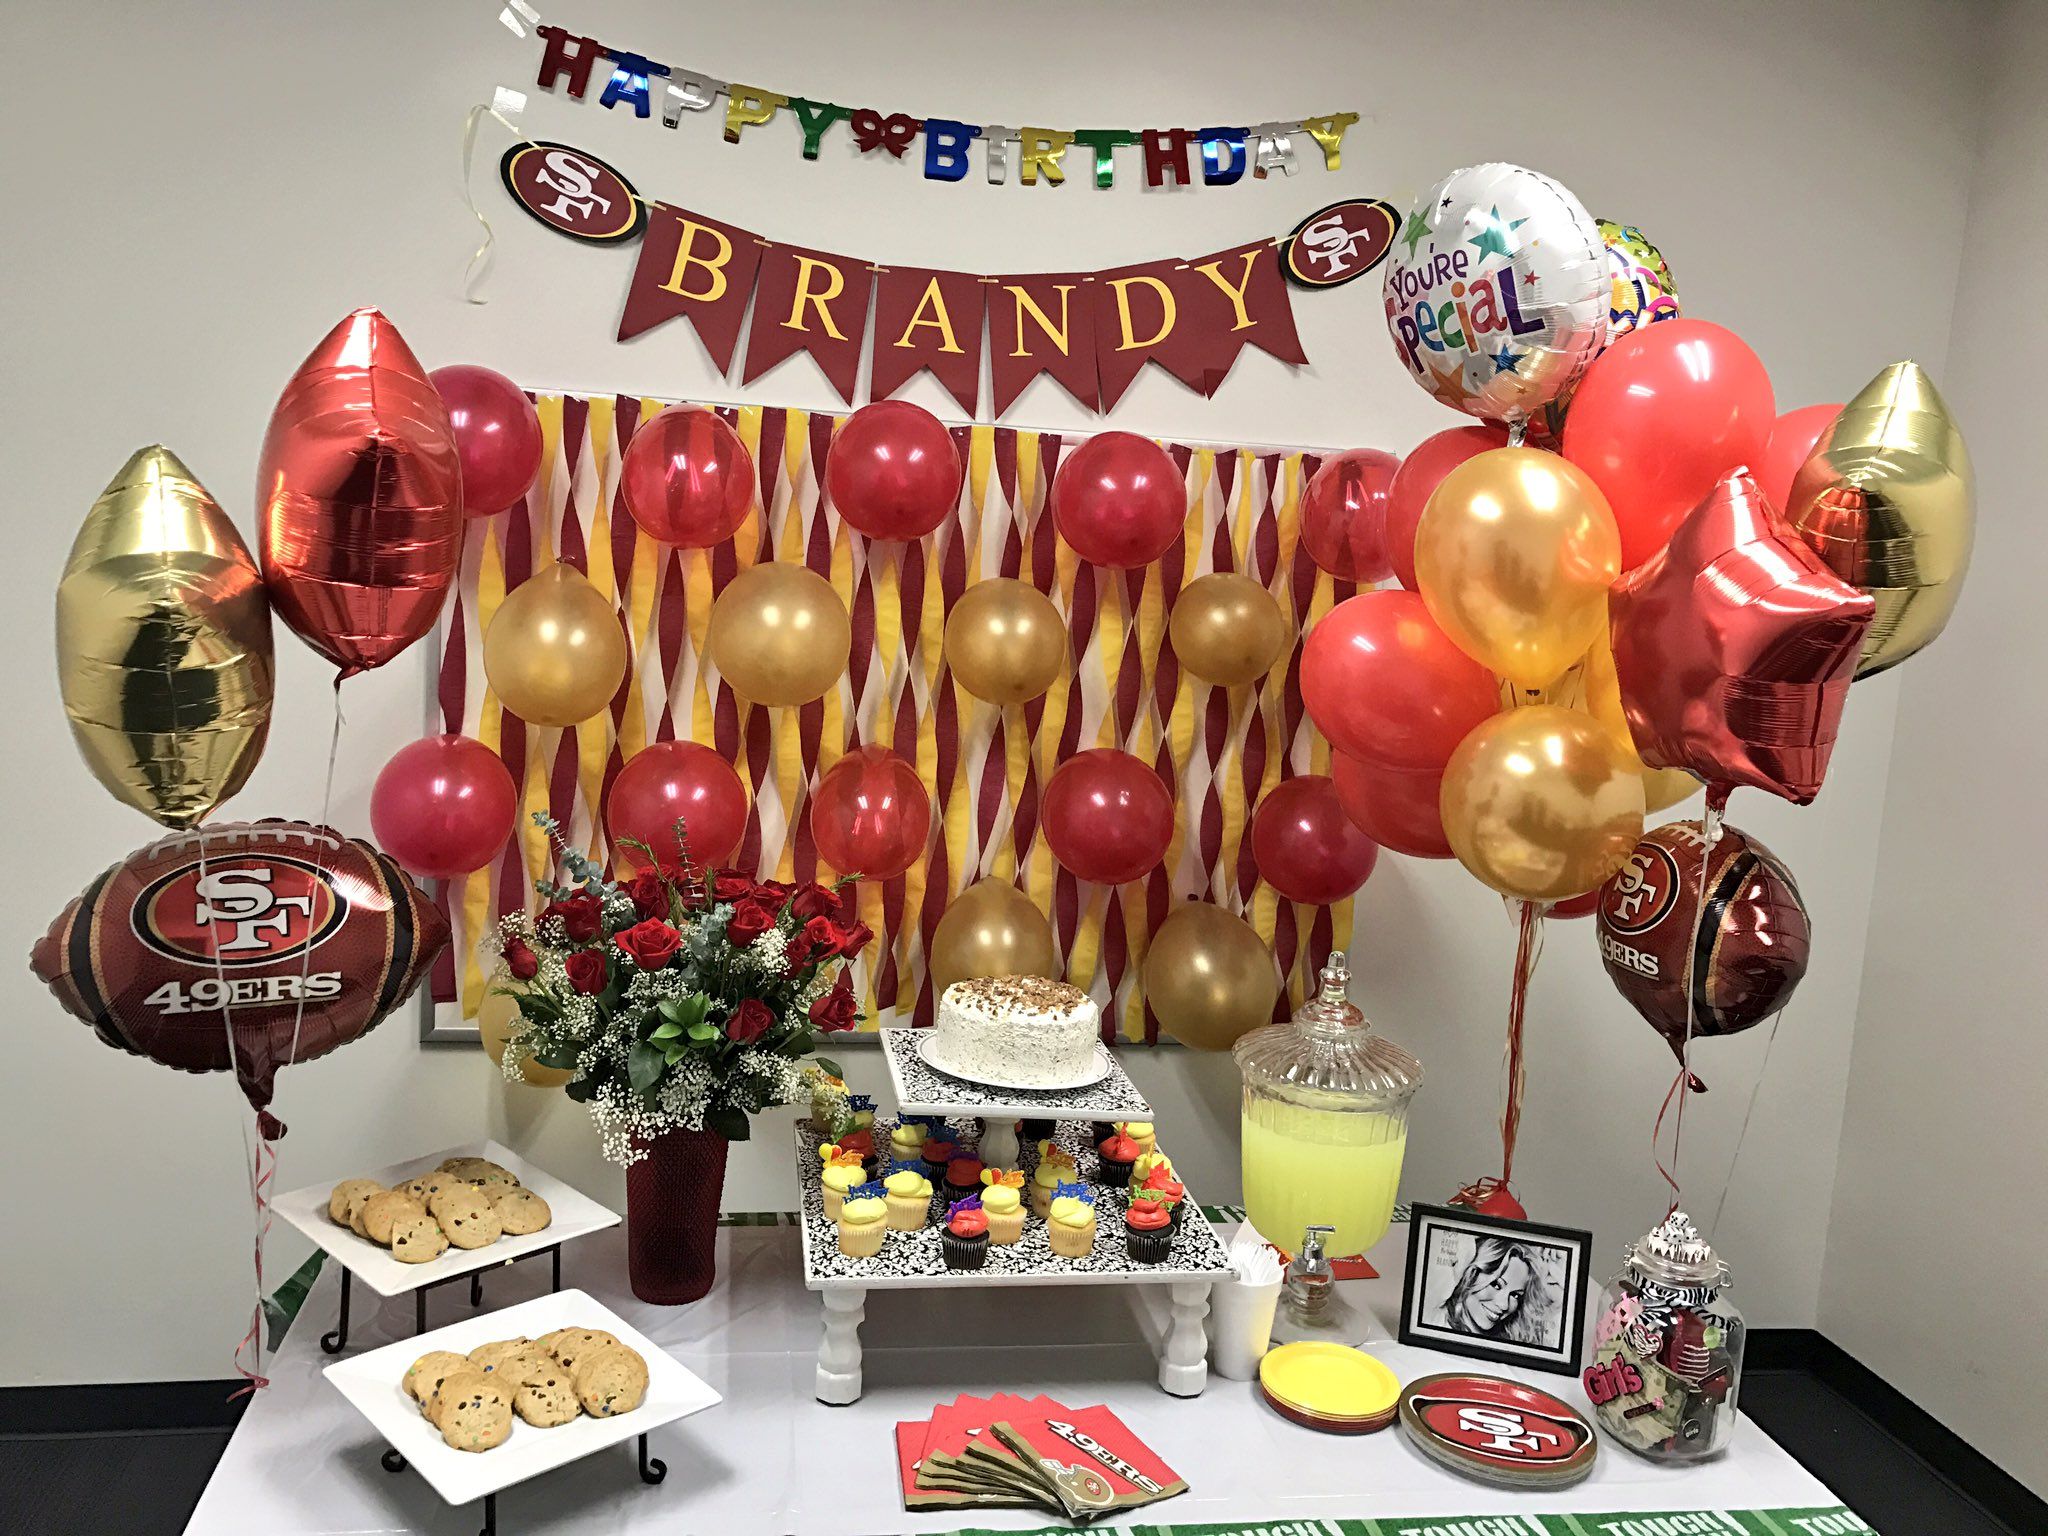 Brandy Ioane On Twitter Surprise Birthday At The Office 49ers